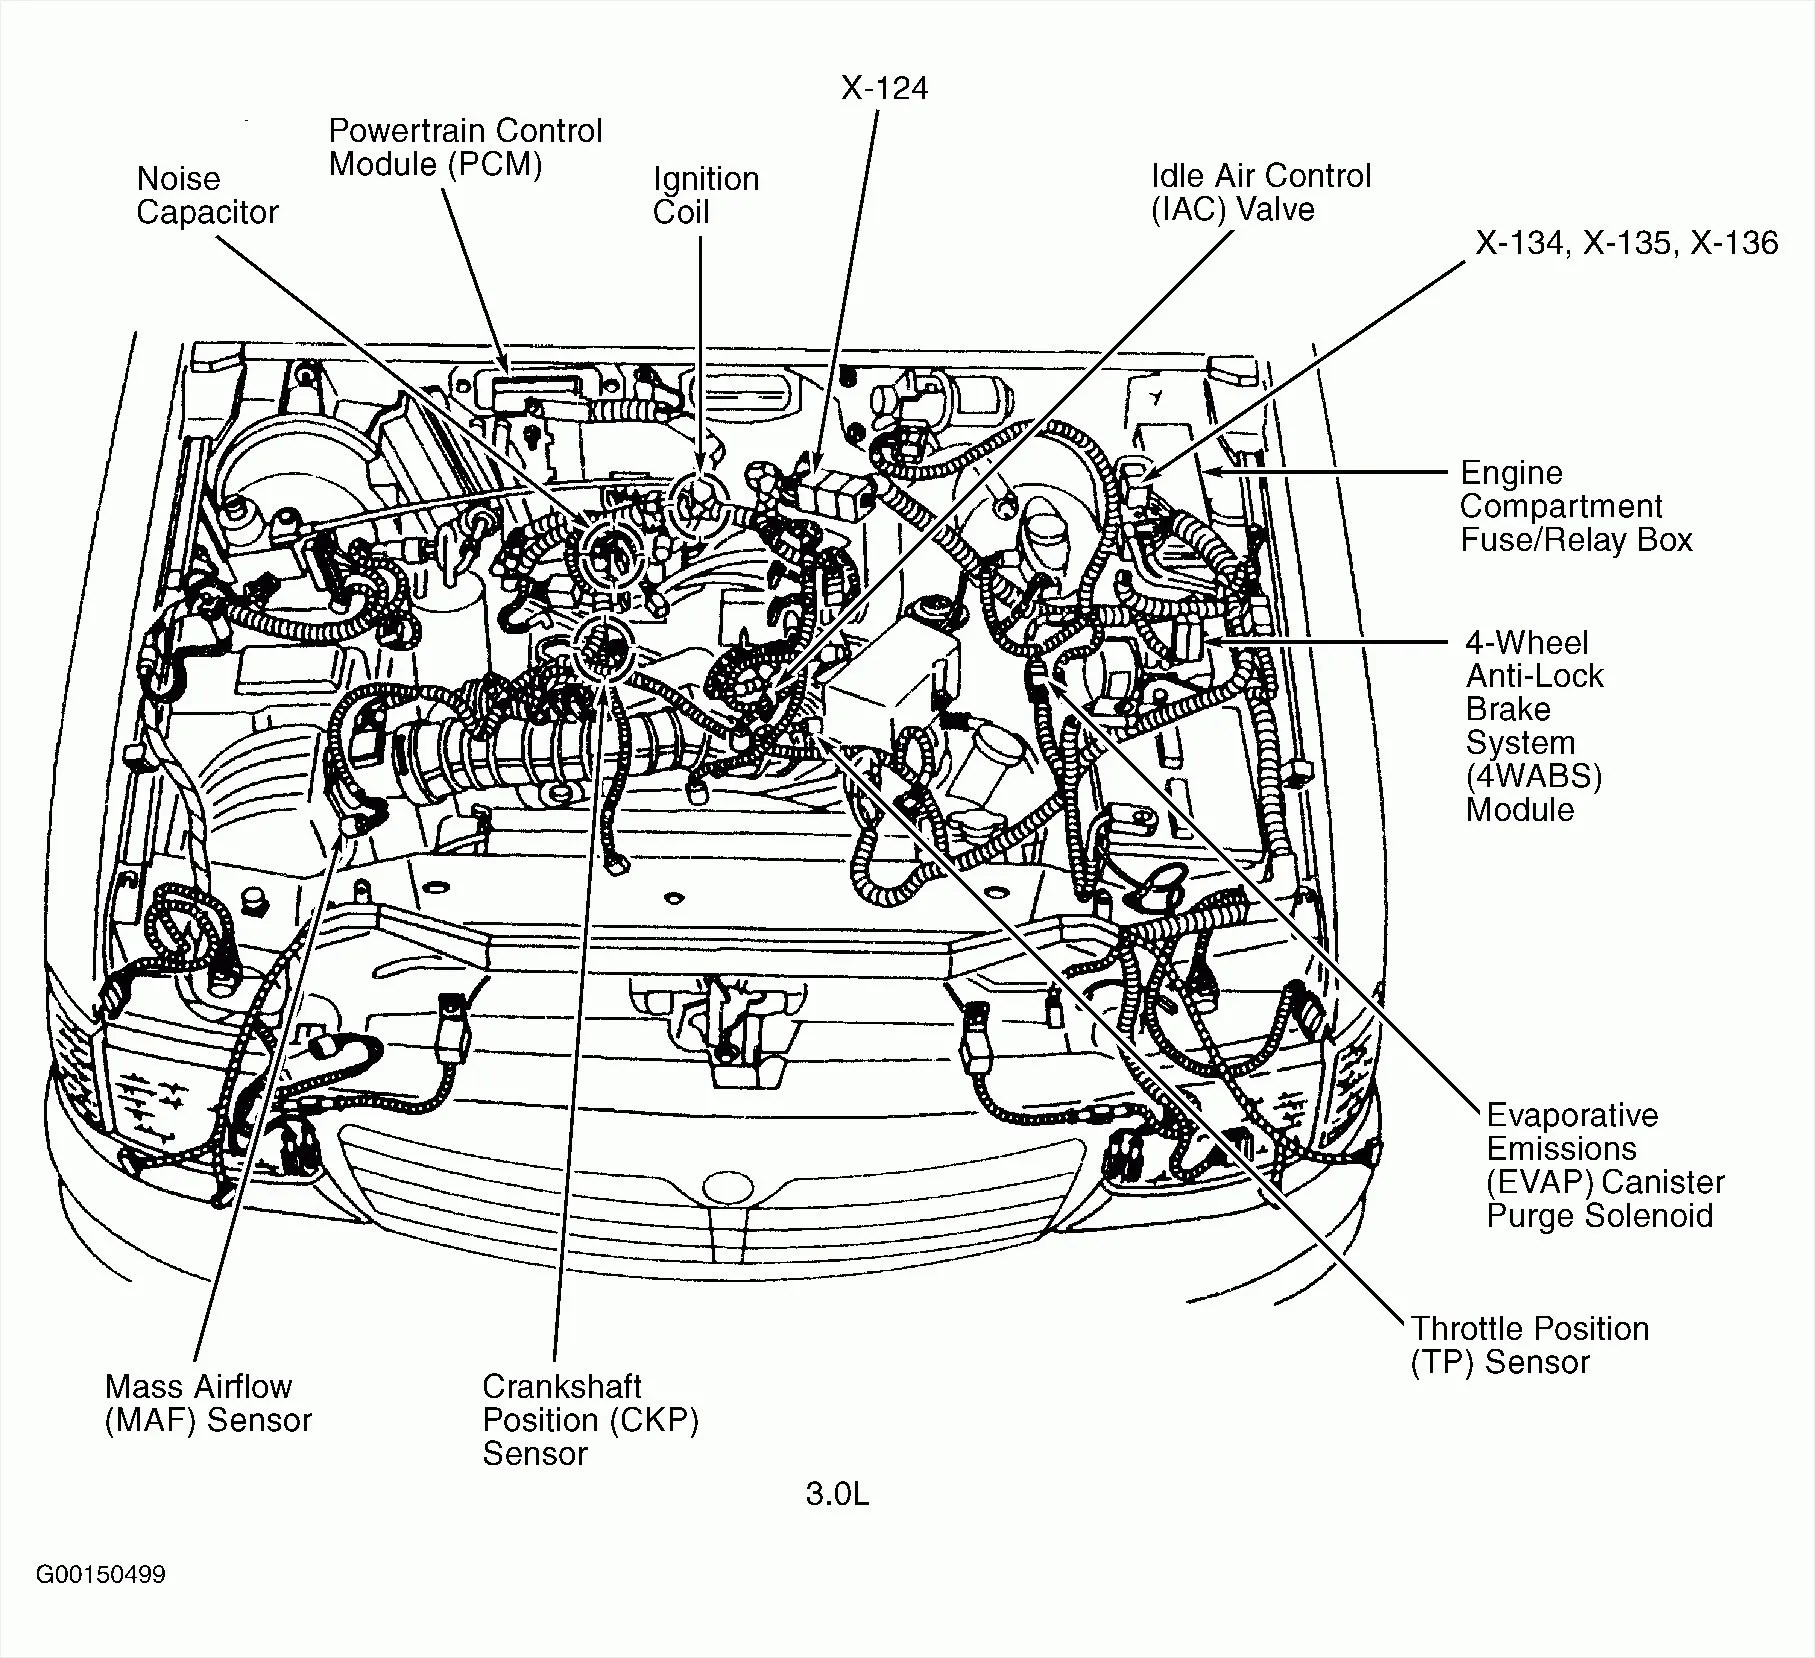 hight resolution of location 2001 ford mustang on 2008 gmc acadia 3 6 engine diagram 2001 ford mustang gt engine diagram 2001 mustang engine diagram